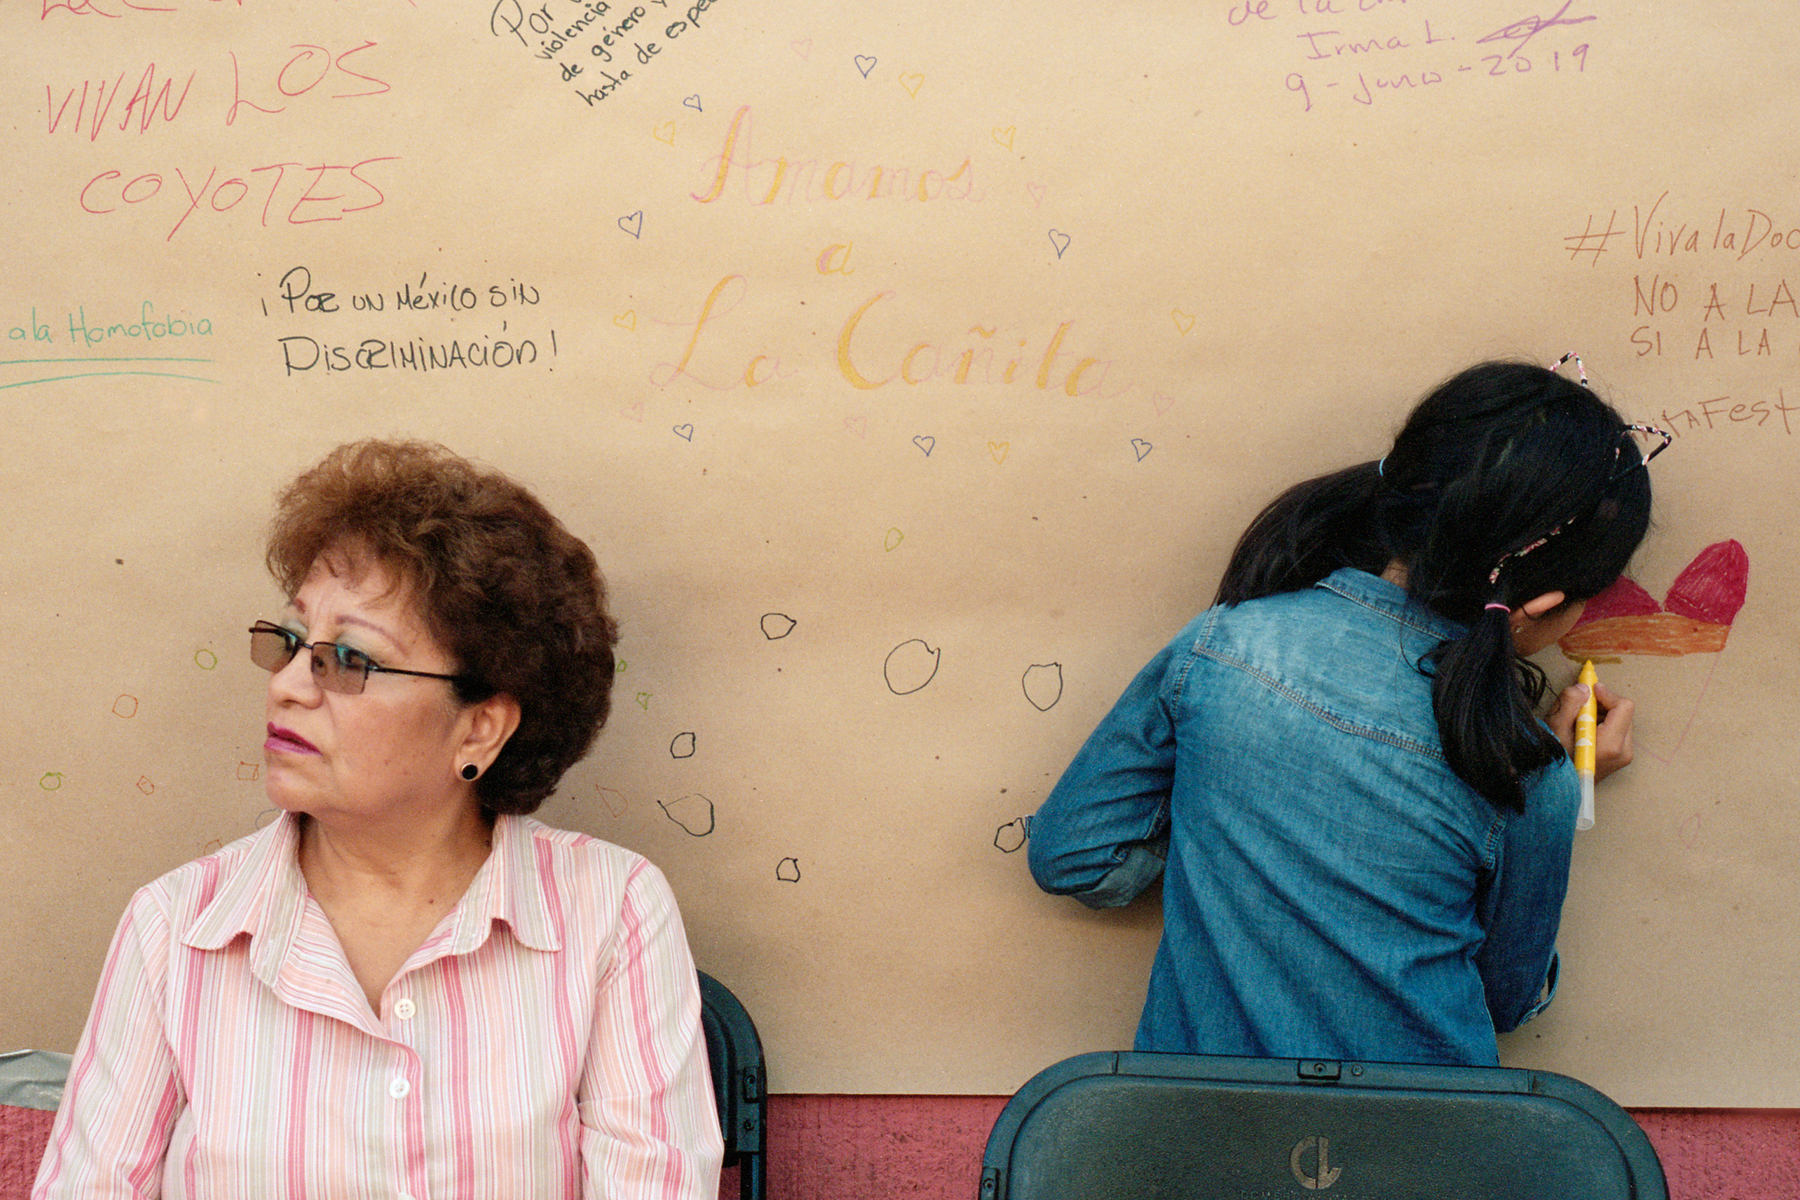 June 9, 2019 - Mexico City, Mexico: Left, Marta Flores, 63, a Doctores resident, in front of a poster where people wrote messages of solidarity with the LGBTQ+ community and support for La Cañita. (Mallika Vora)